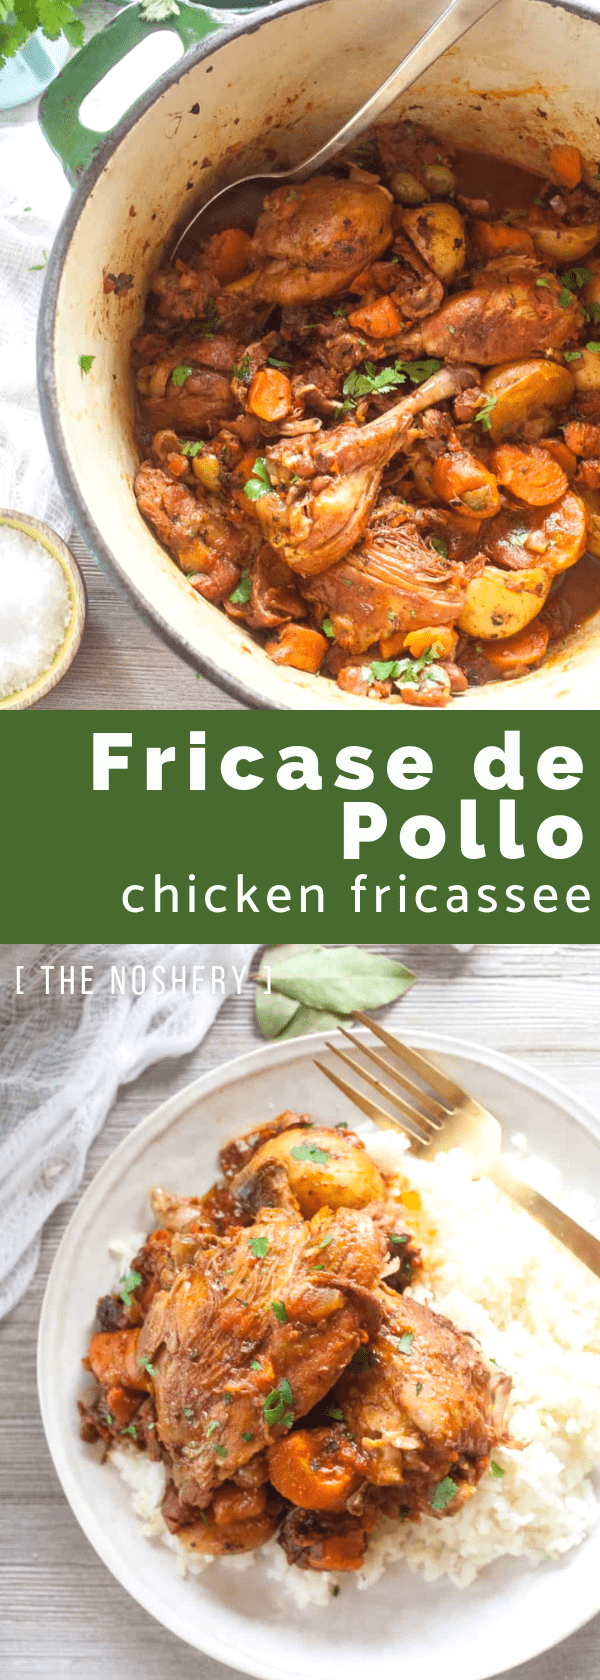 Fricase de Pollo (Chicken Fricassee) | Fricase de pollo a traditional Puerto Rican dish of chicken that is braised in wine with potatoes and carrots. It the kind of dish that warms your heart. | The Noshery